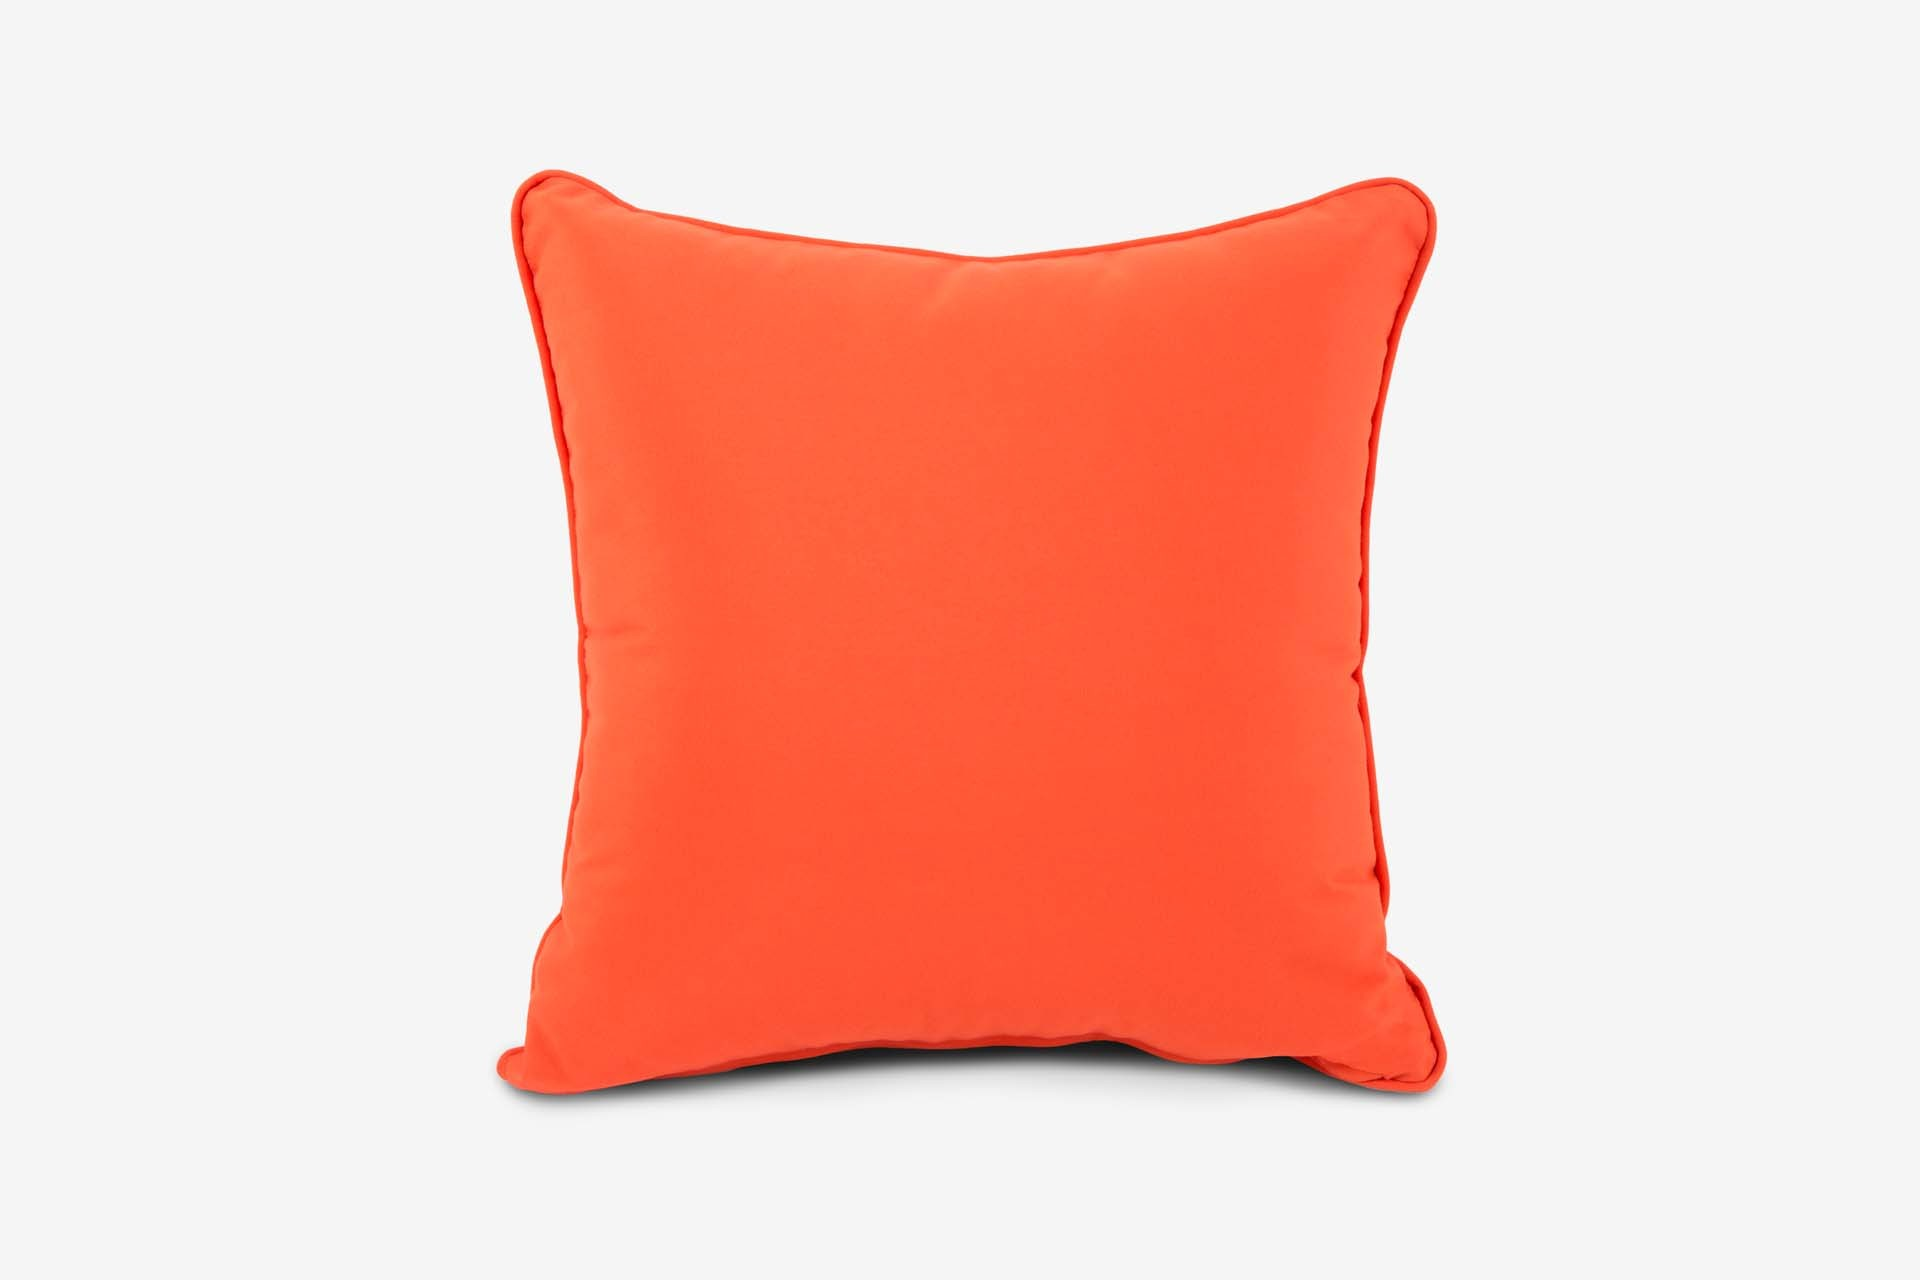 High Quality Sofa Pillows Canvas Melon Throw Pillows Cushions Fabrics Homeware